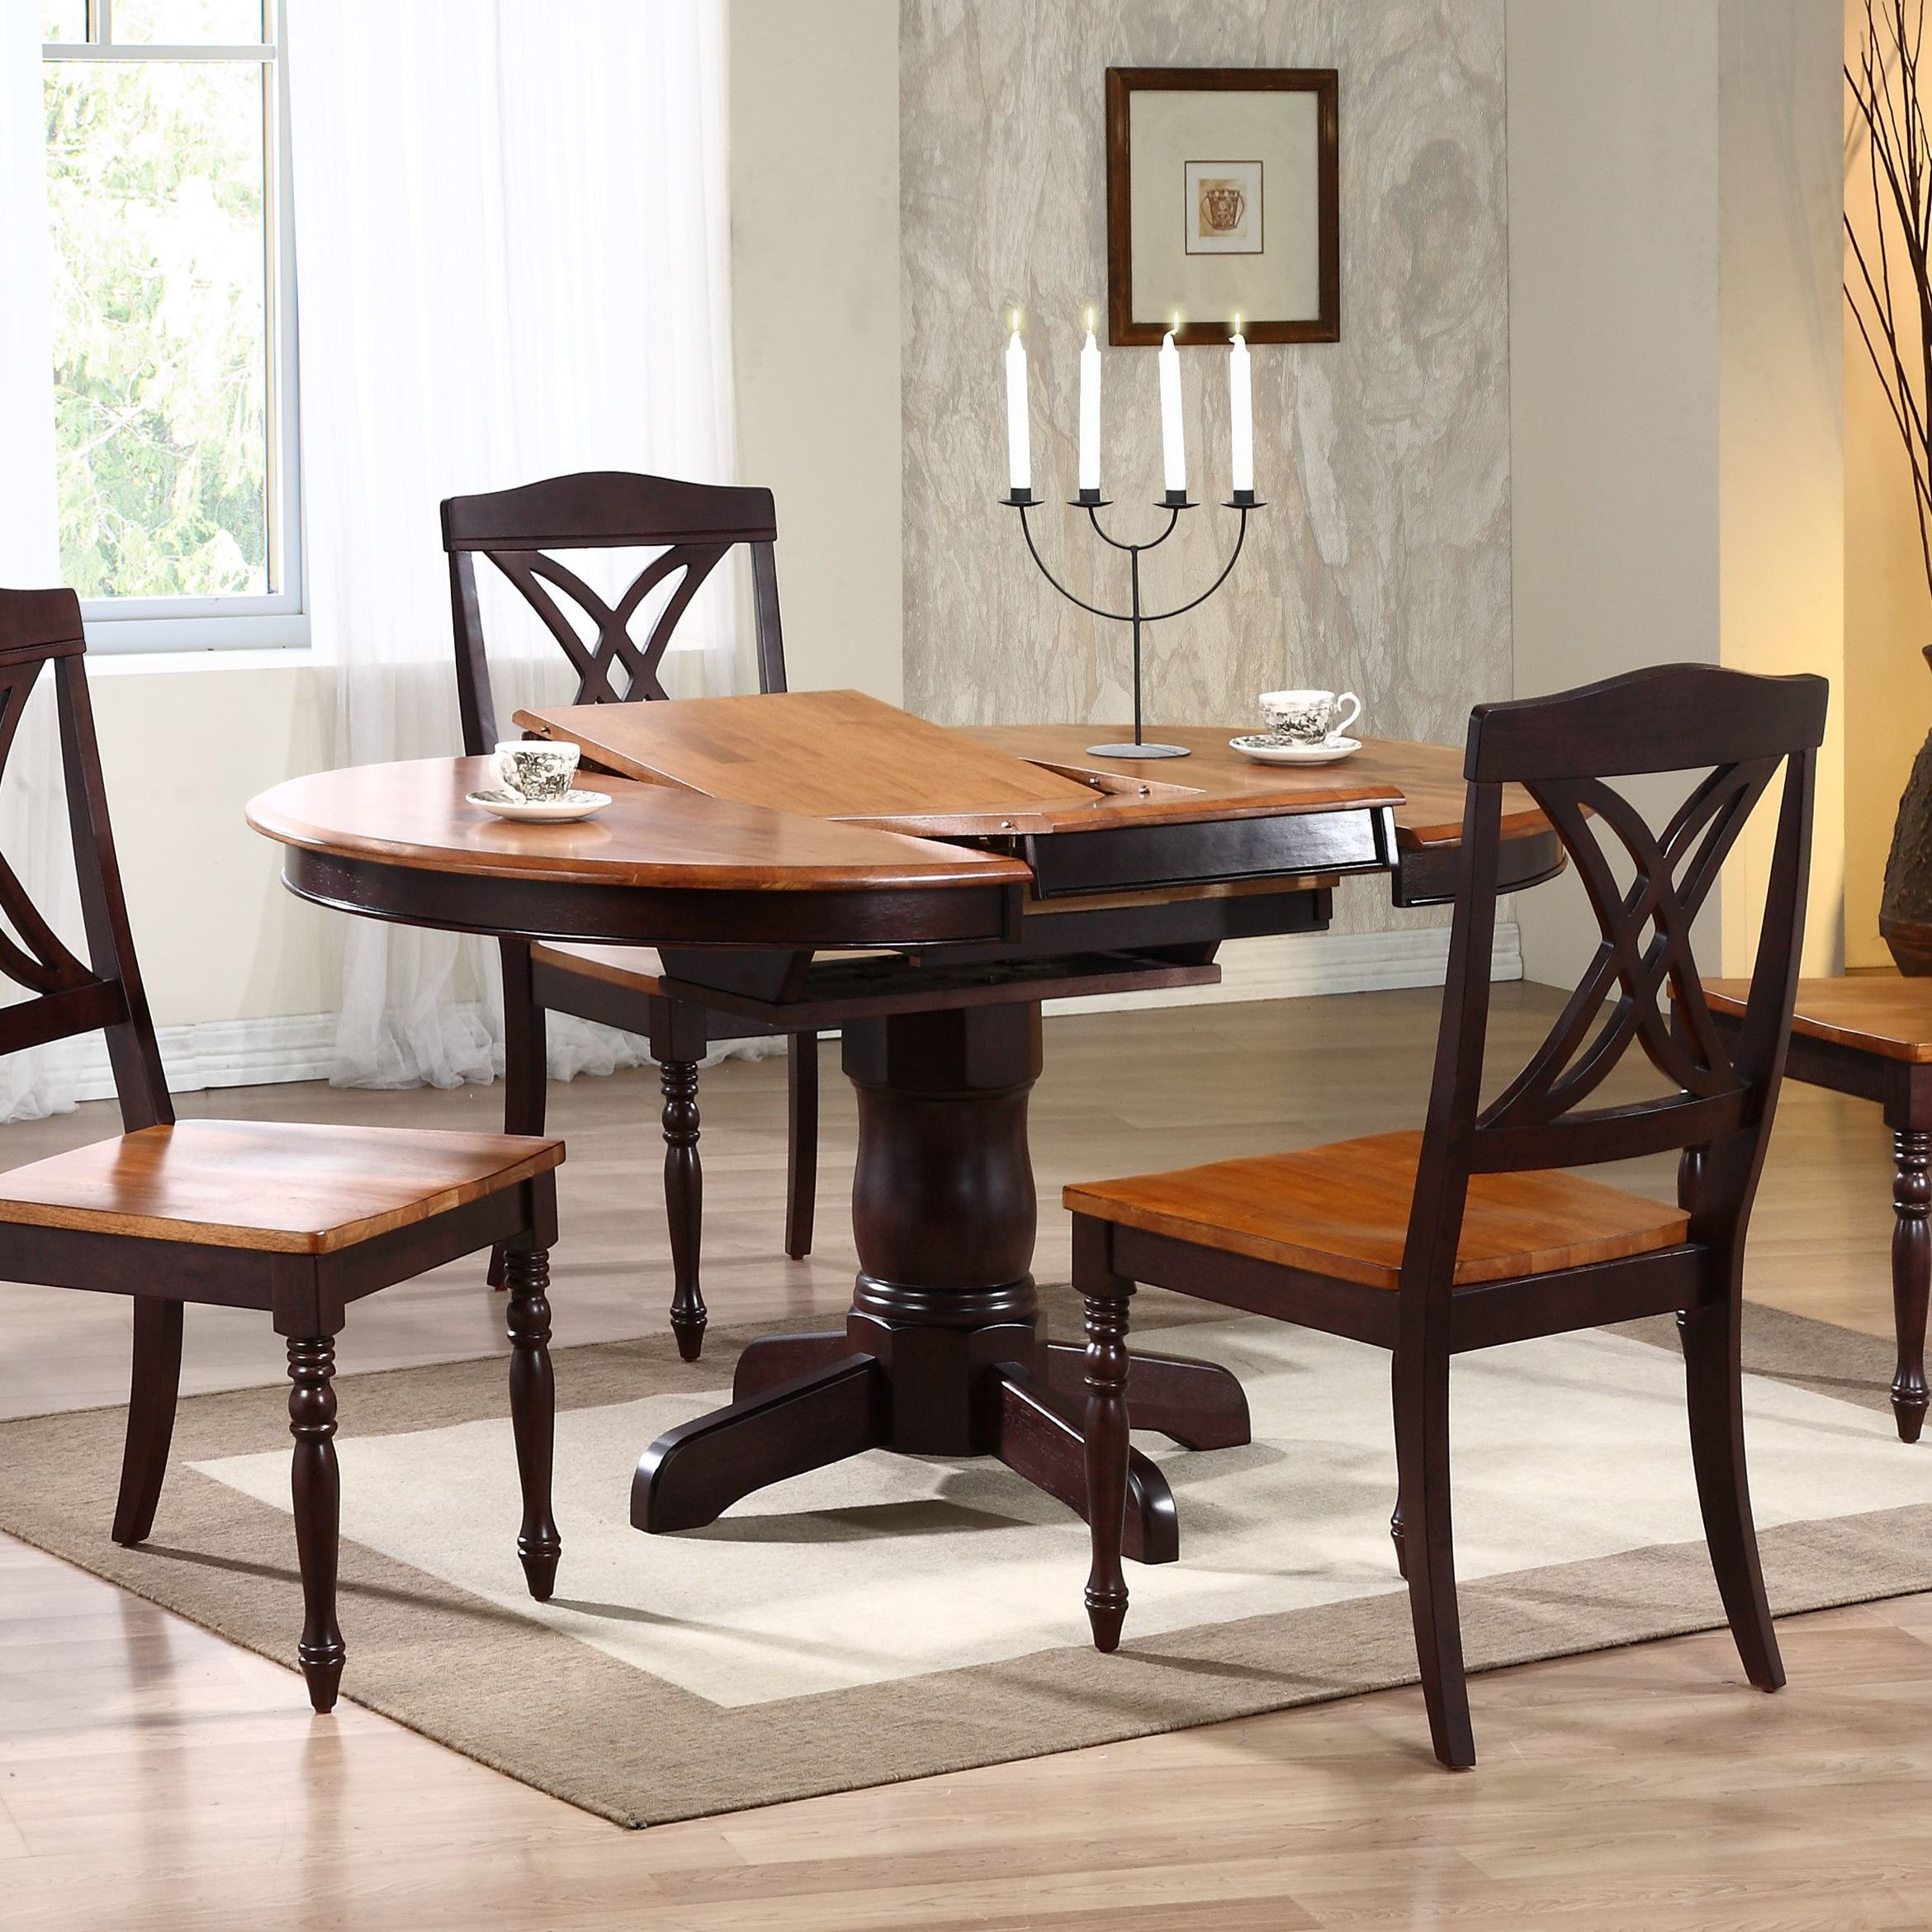 Extendable Solid Wood Dining Table In 2019 Mom And Dad S New